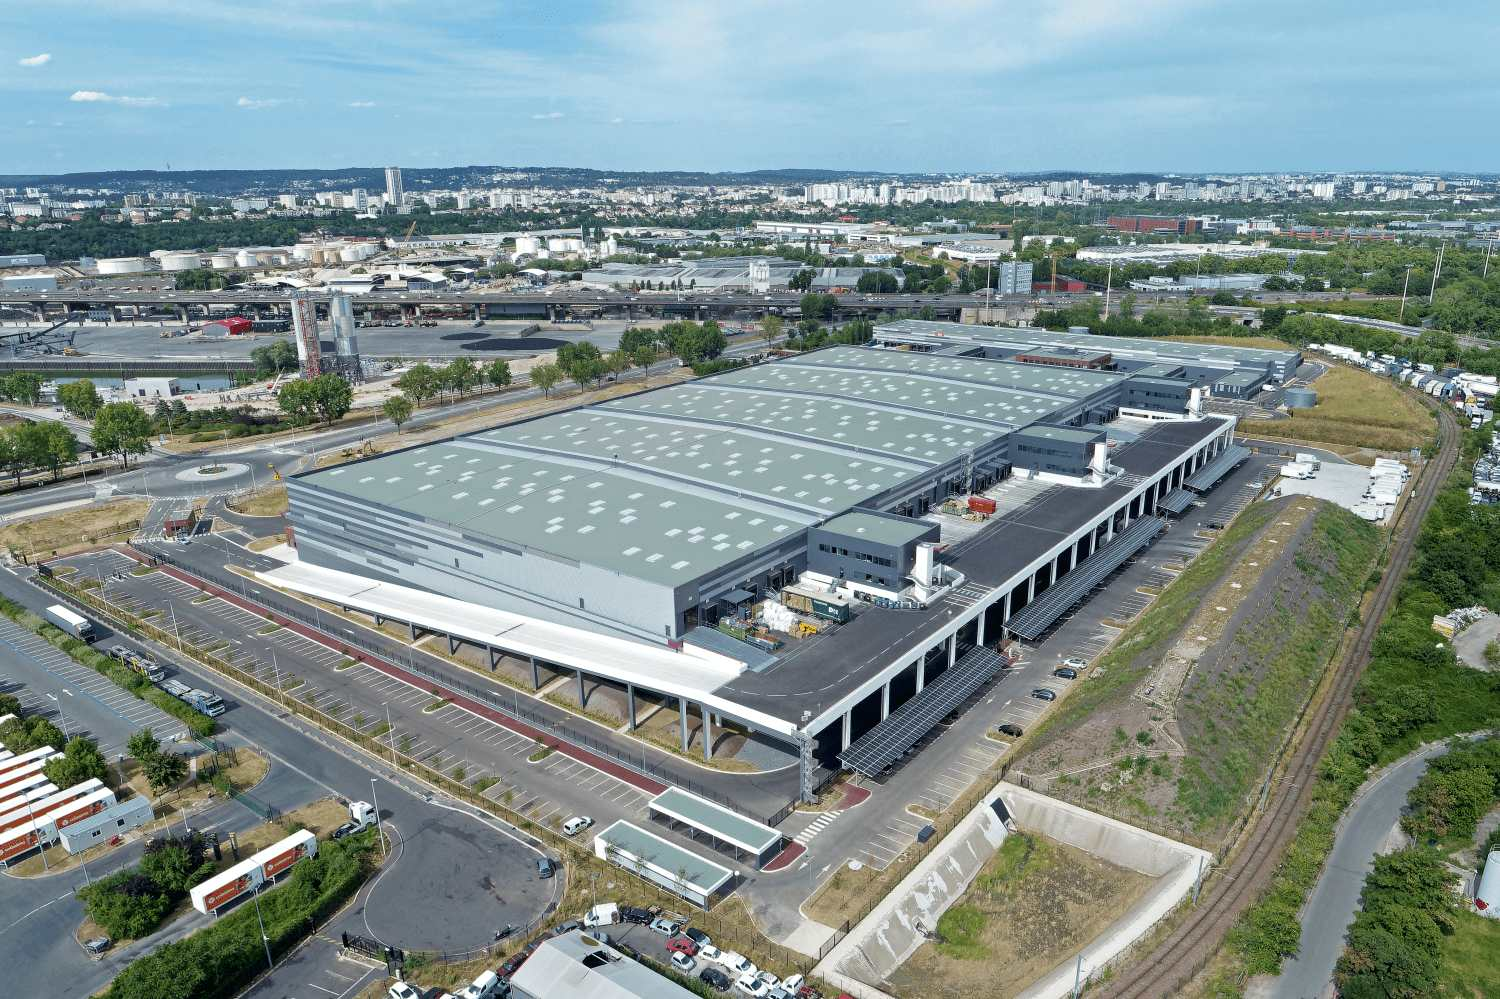 The Paris Air² logistics platform (Gennevilliers) certified Breeam Excellent with the best score obtained in France